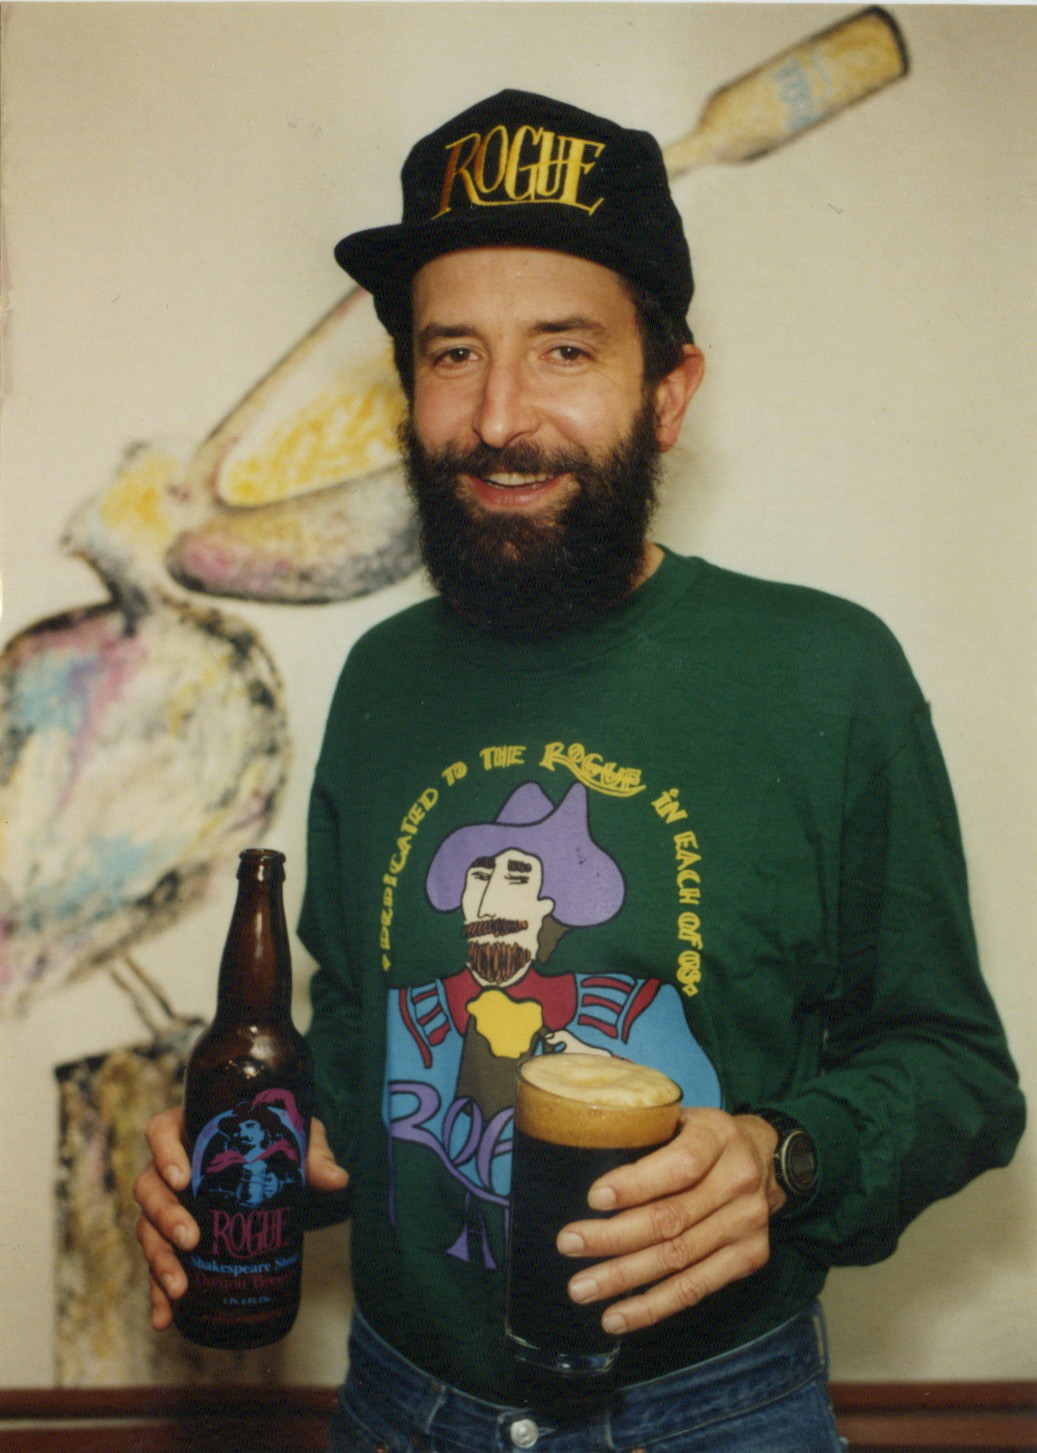 John Maier in Rogue gear. (image courtesy of Rogue Ales)